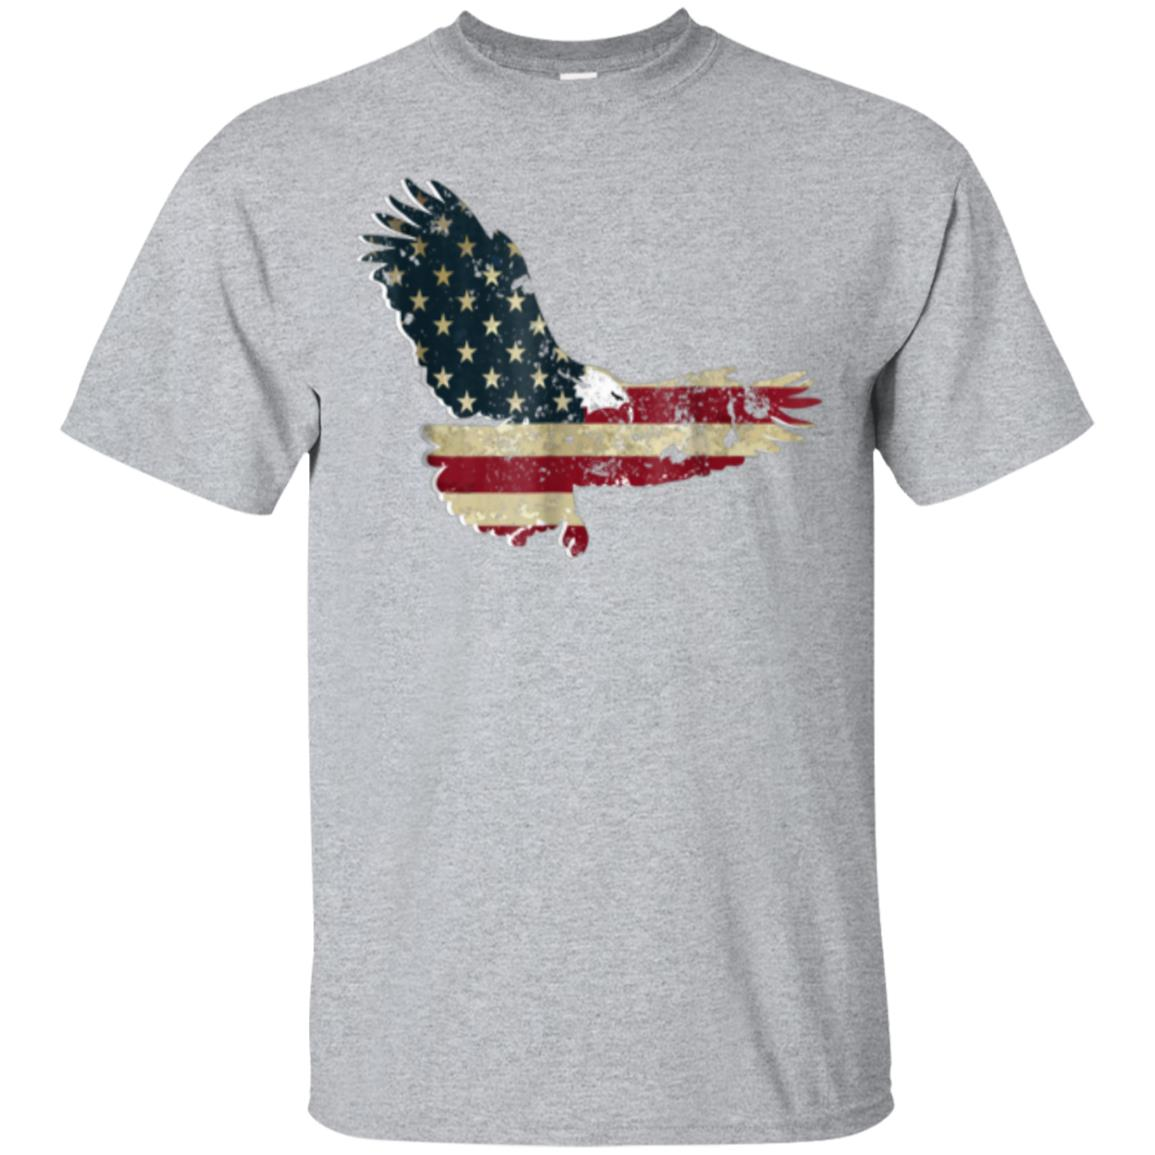 Patriotic Eagle USA American Flag T-shirt 99promocode